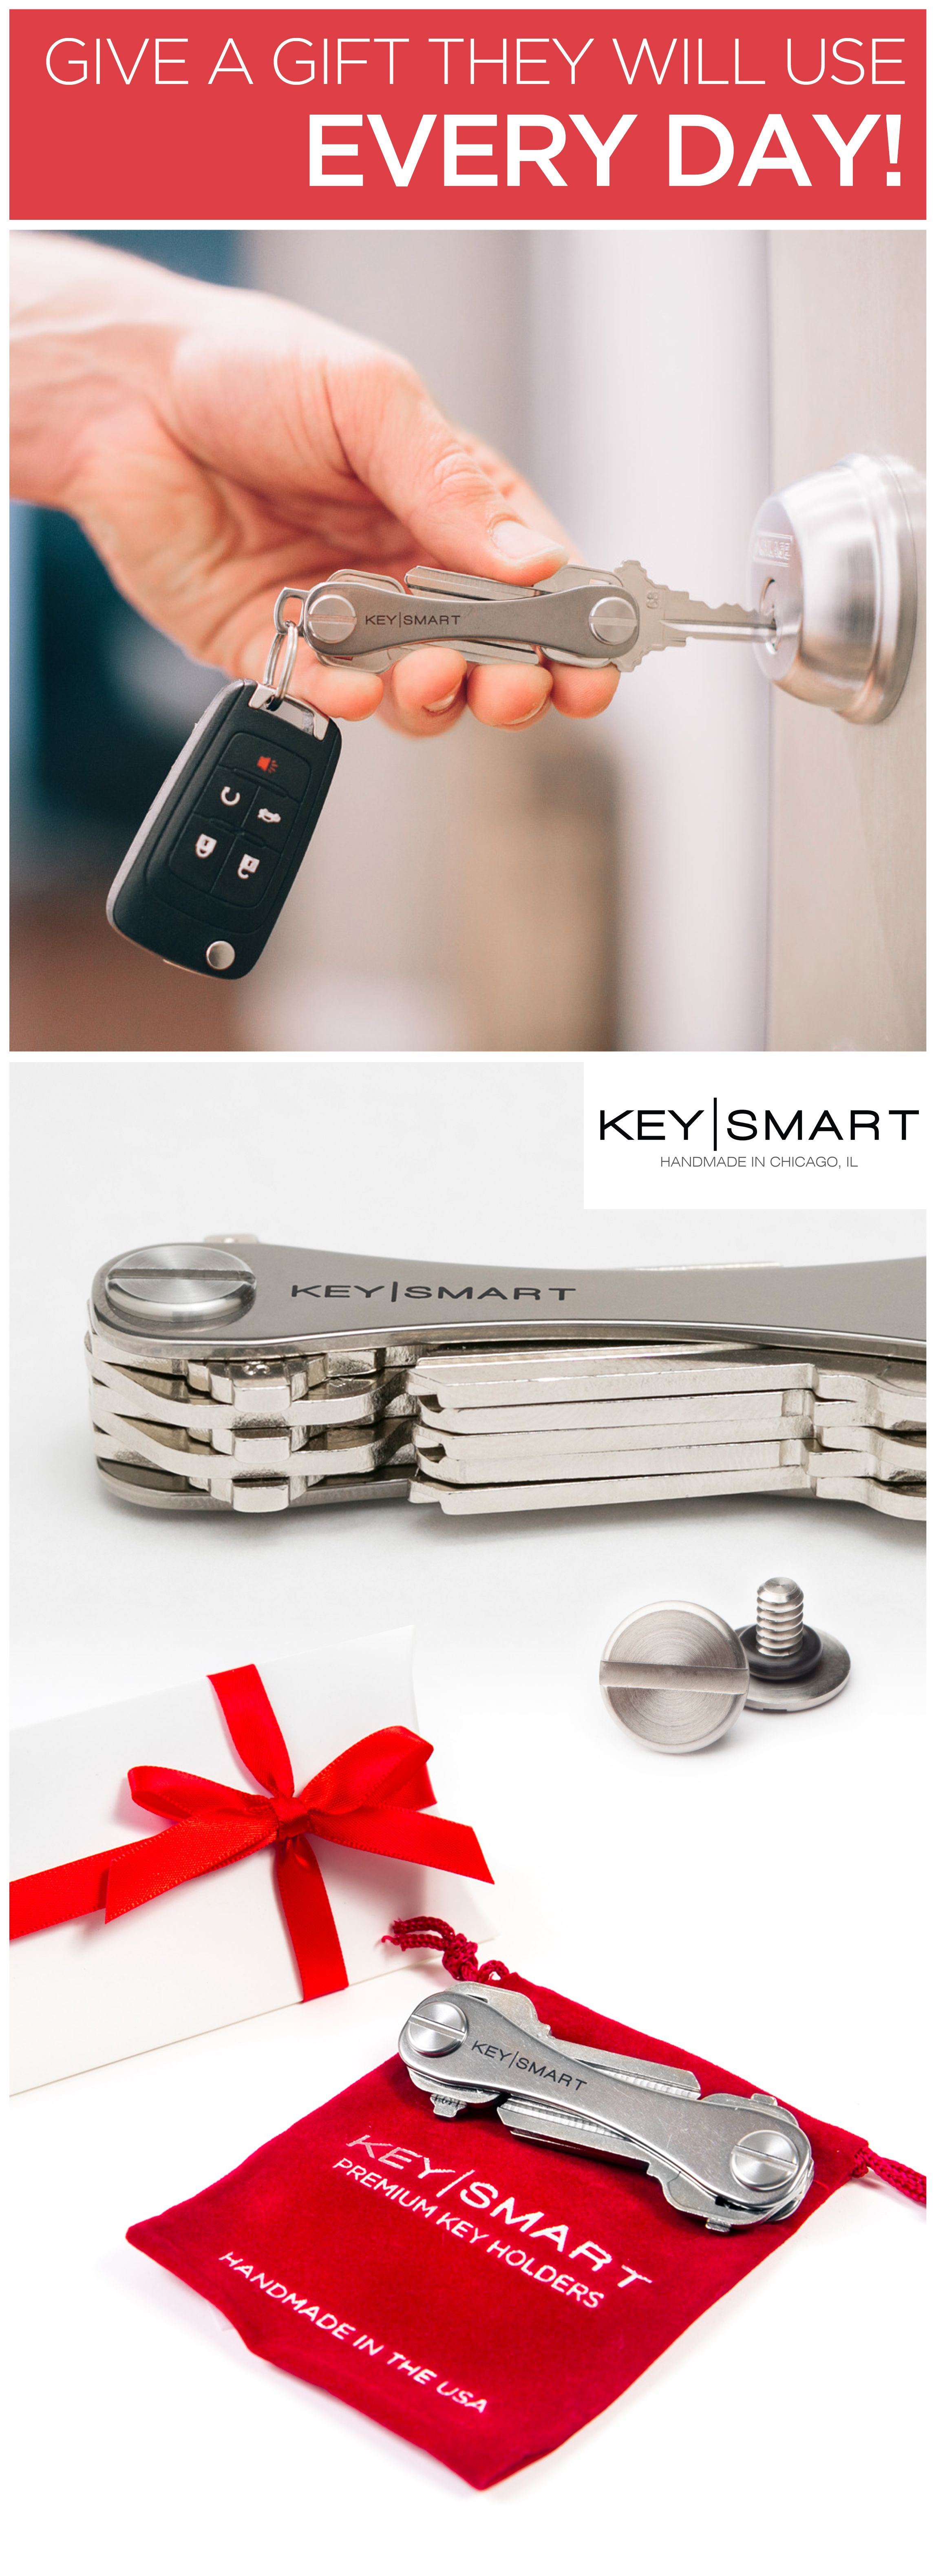 Are You Looking For A Great Gift Your Friends And Family Will Actually Use The Key Smart Is A